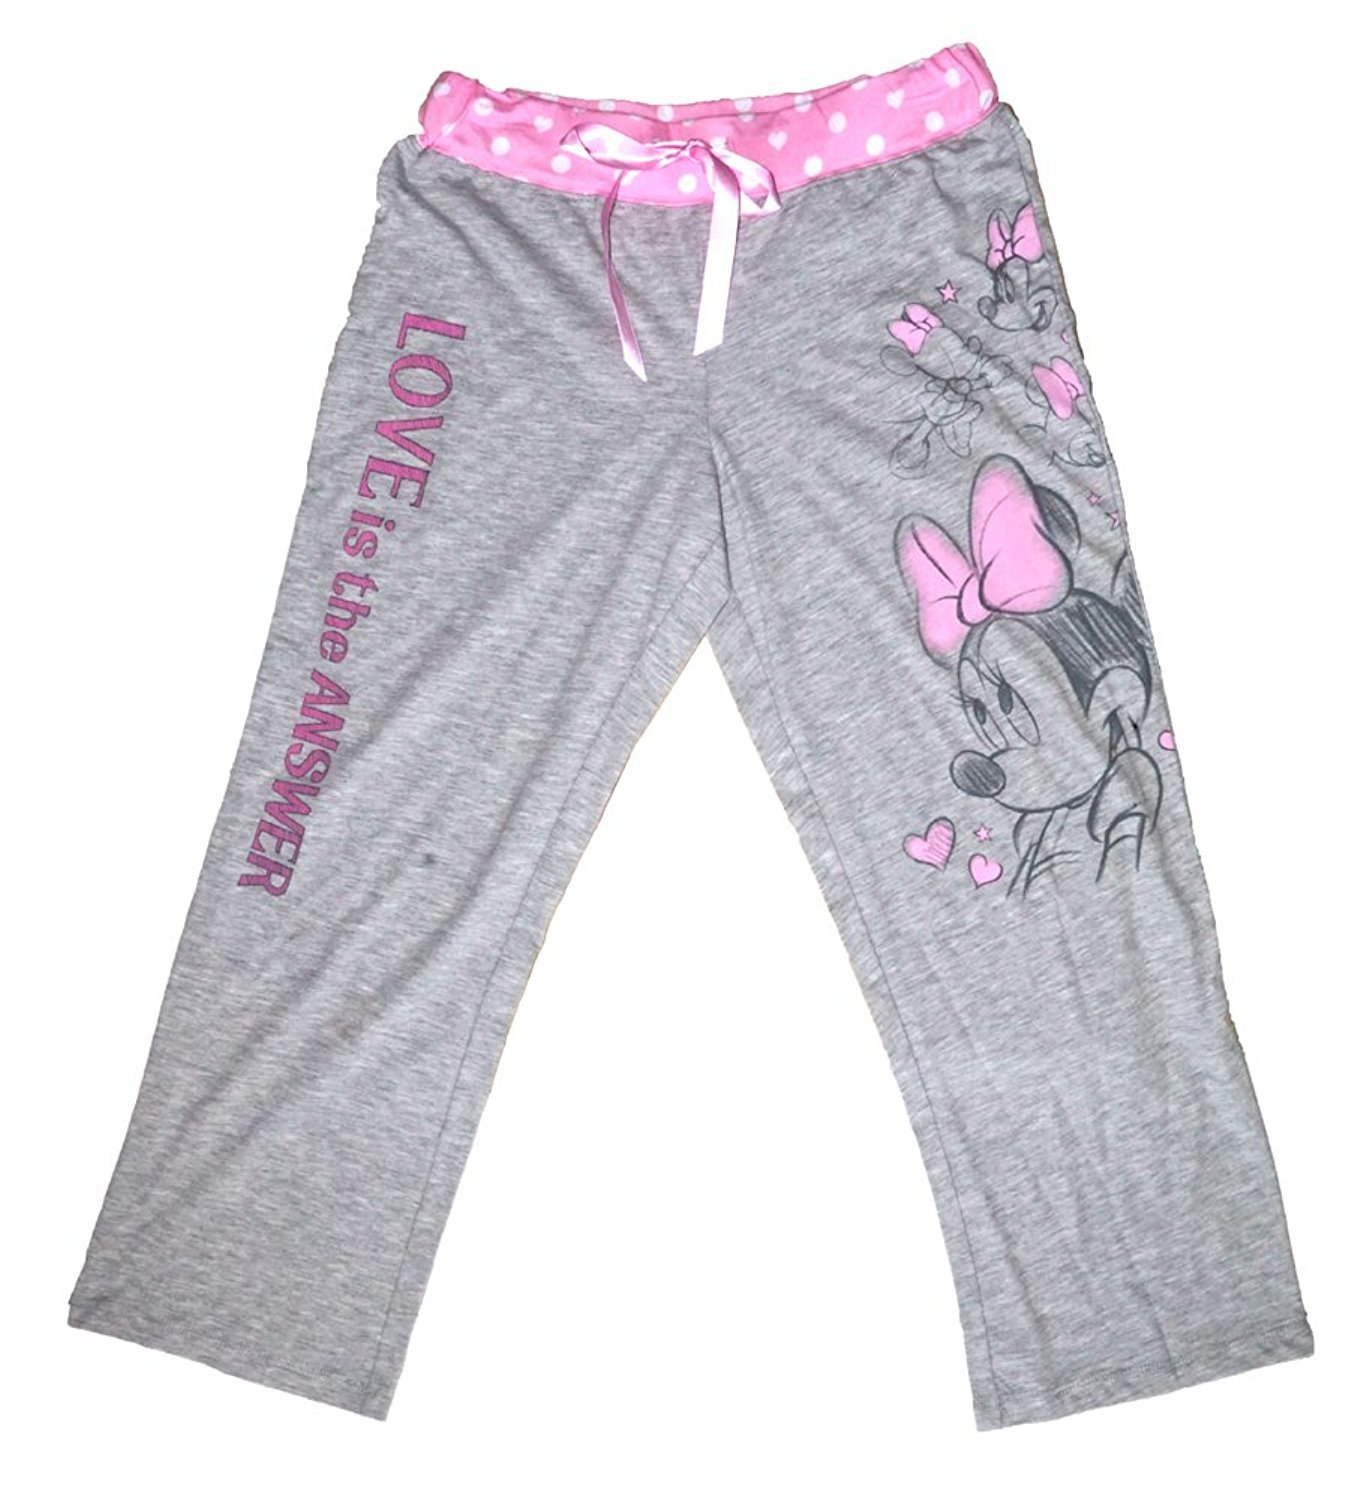 Disney Classic Minnie Mouse Womens Pajama Pants - Love is the Answer - Grey